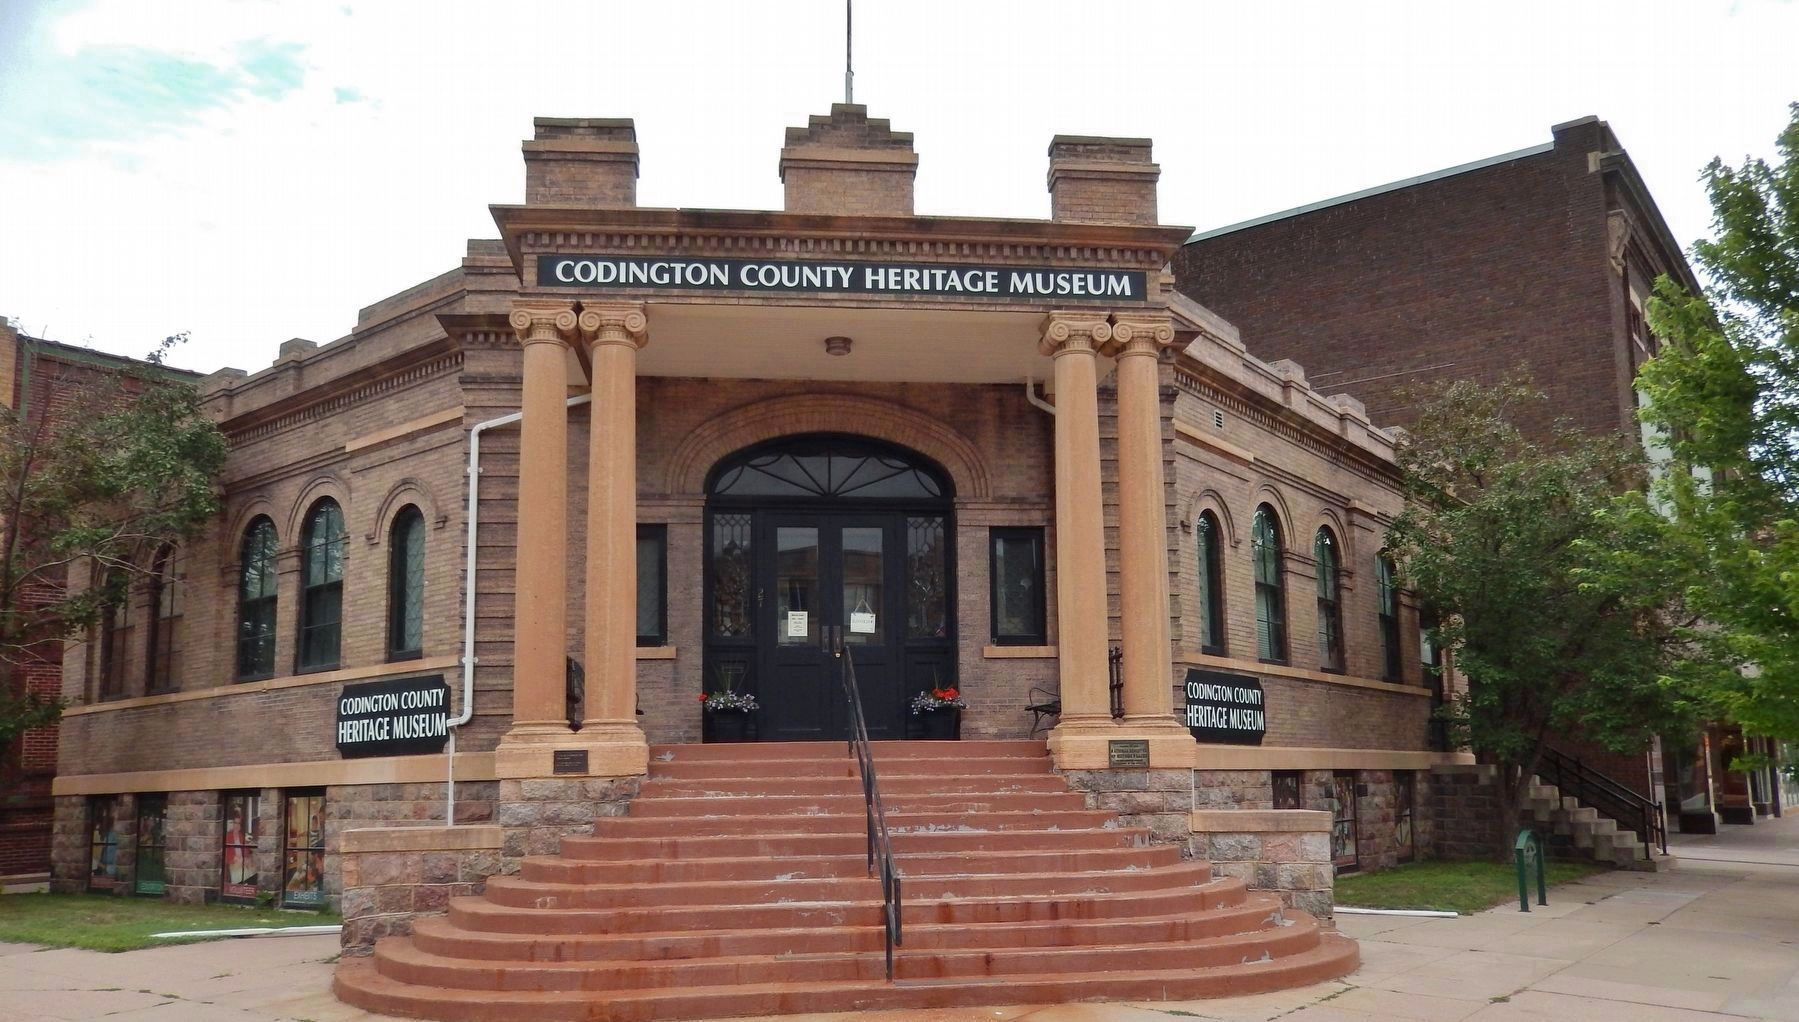 Carnegie Free Public Library (<i>now Codington County Heritage Museum</i>) image. Click for full size.